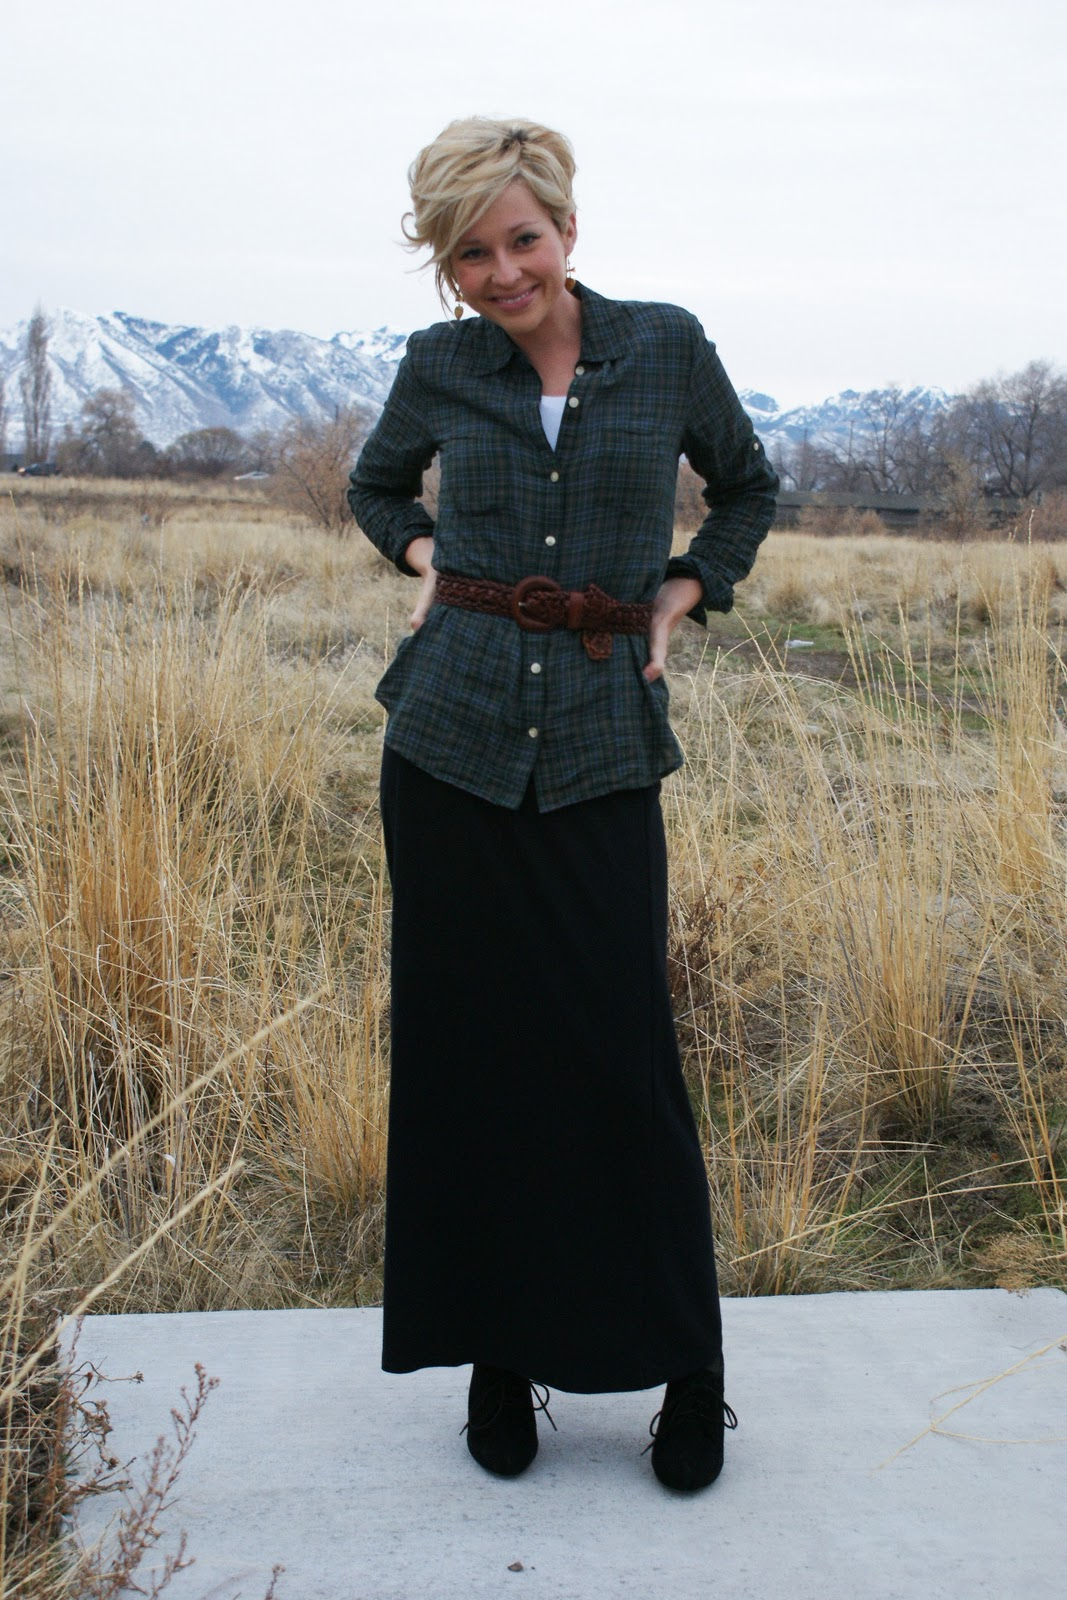 For the Love...: RFF: Long Skirt Short Jacket